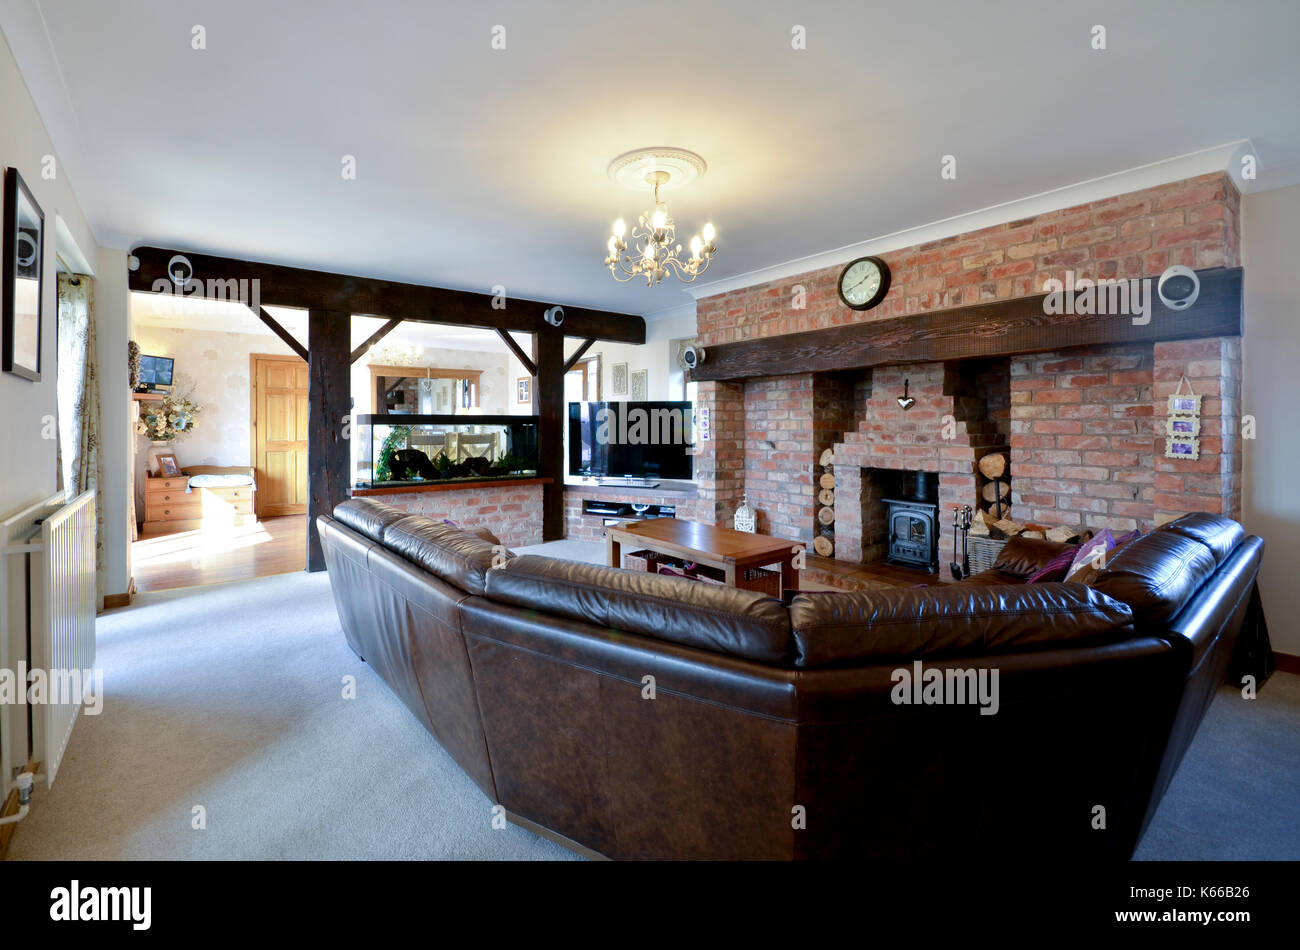 sitting room with exposed beams and large brick fireplace - Stock Image